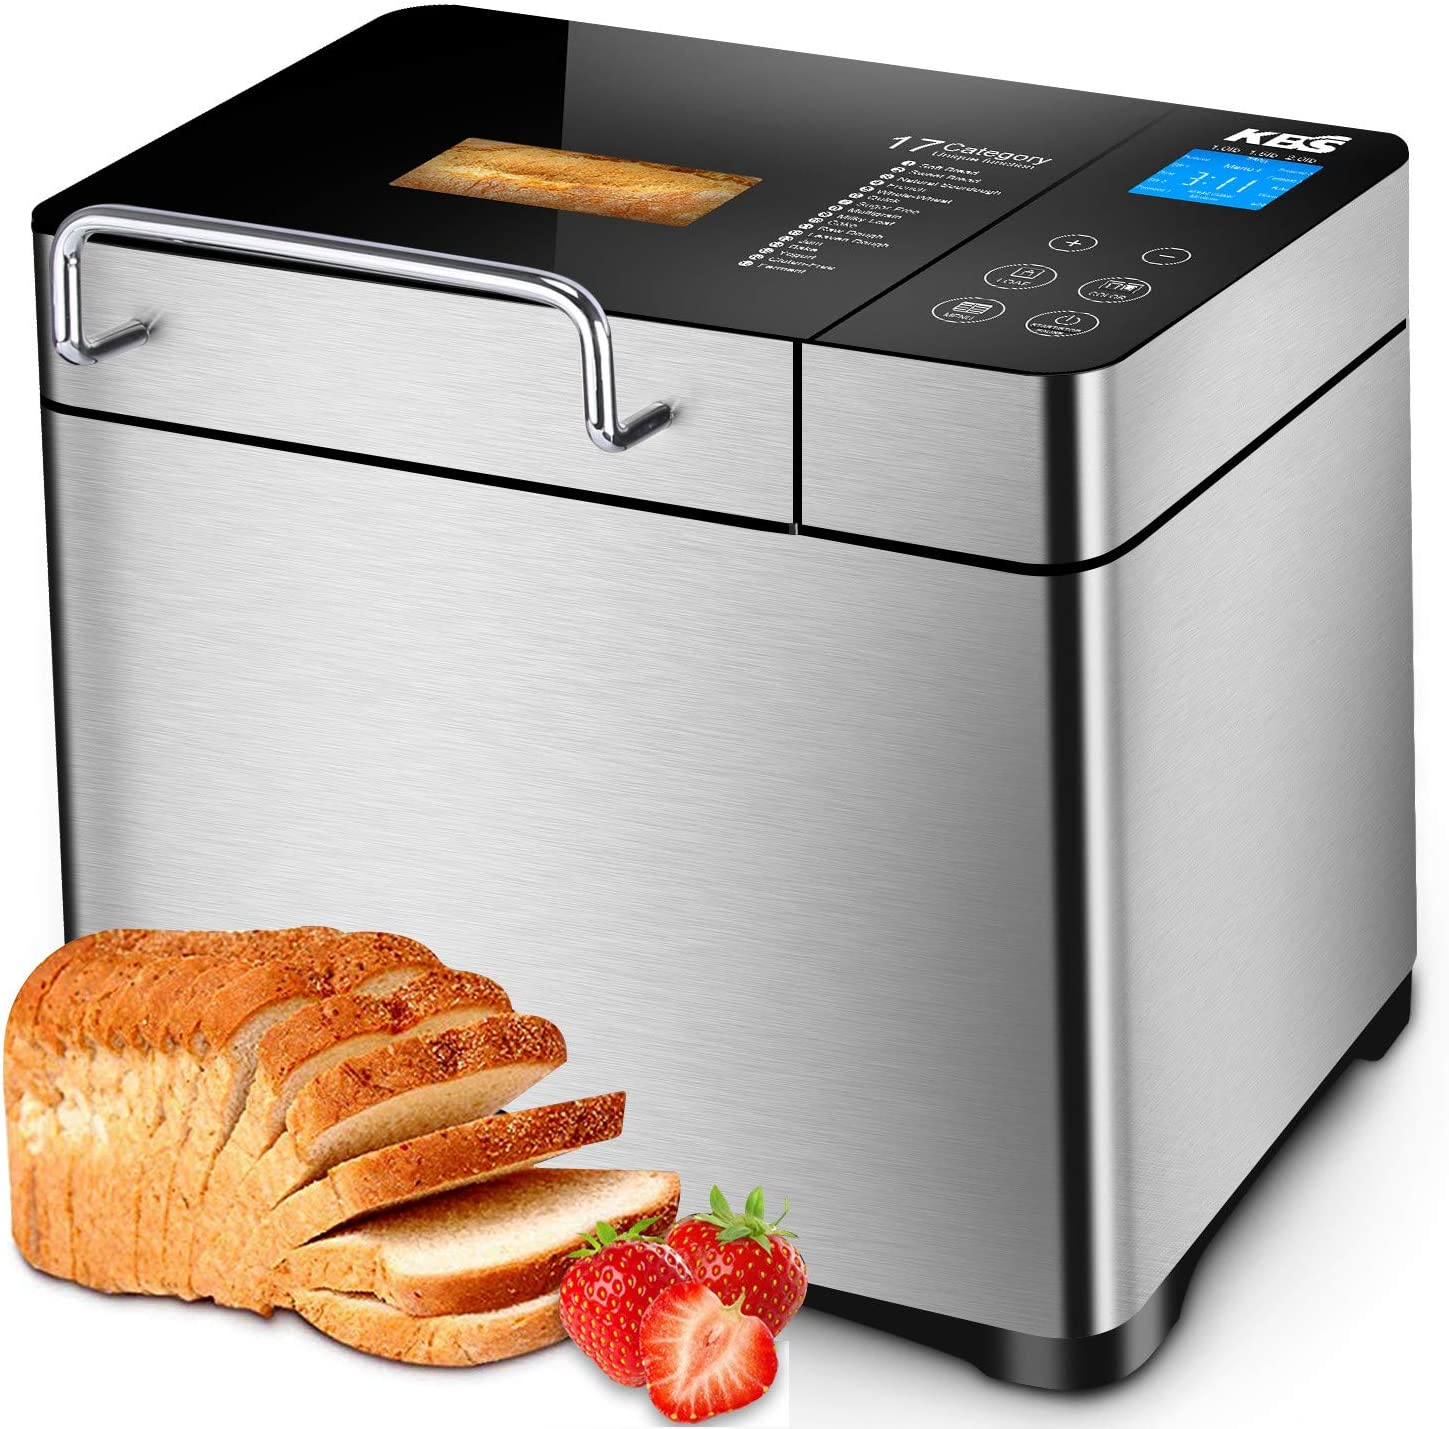 The Best Bread Machine - Our pick